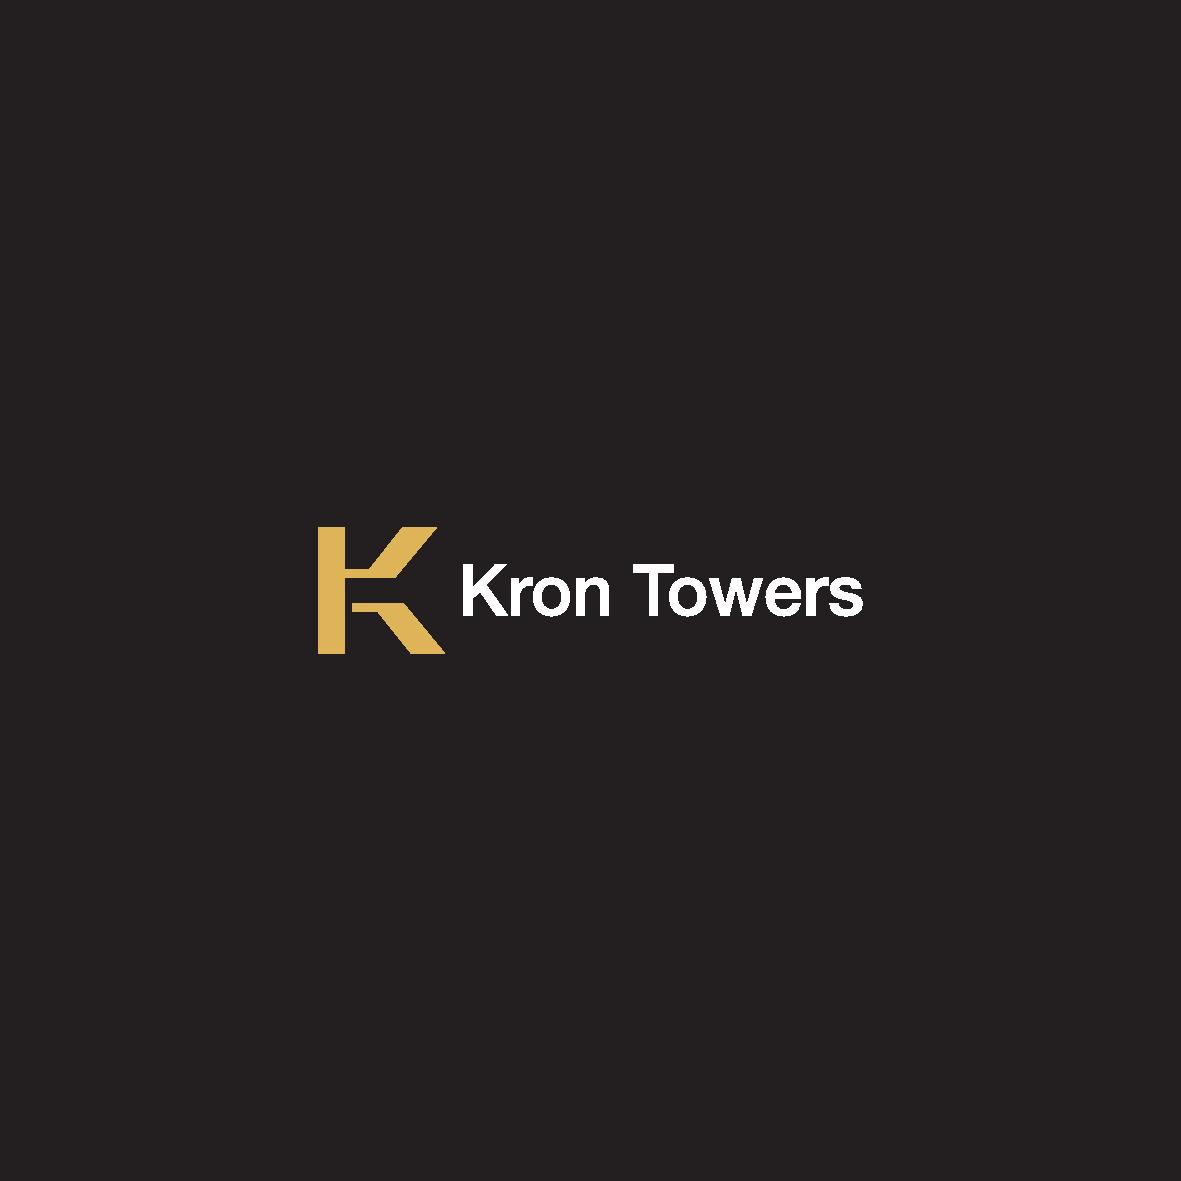 kron-towers-logo (1)-page-002